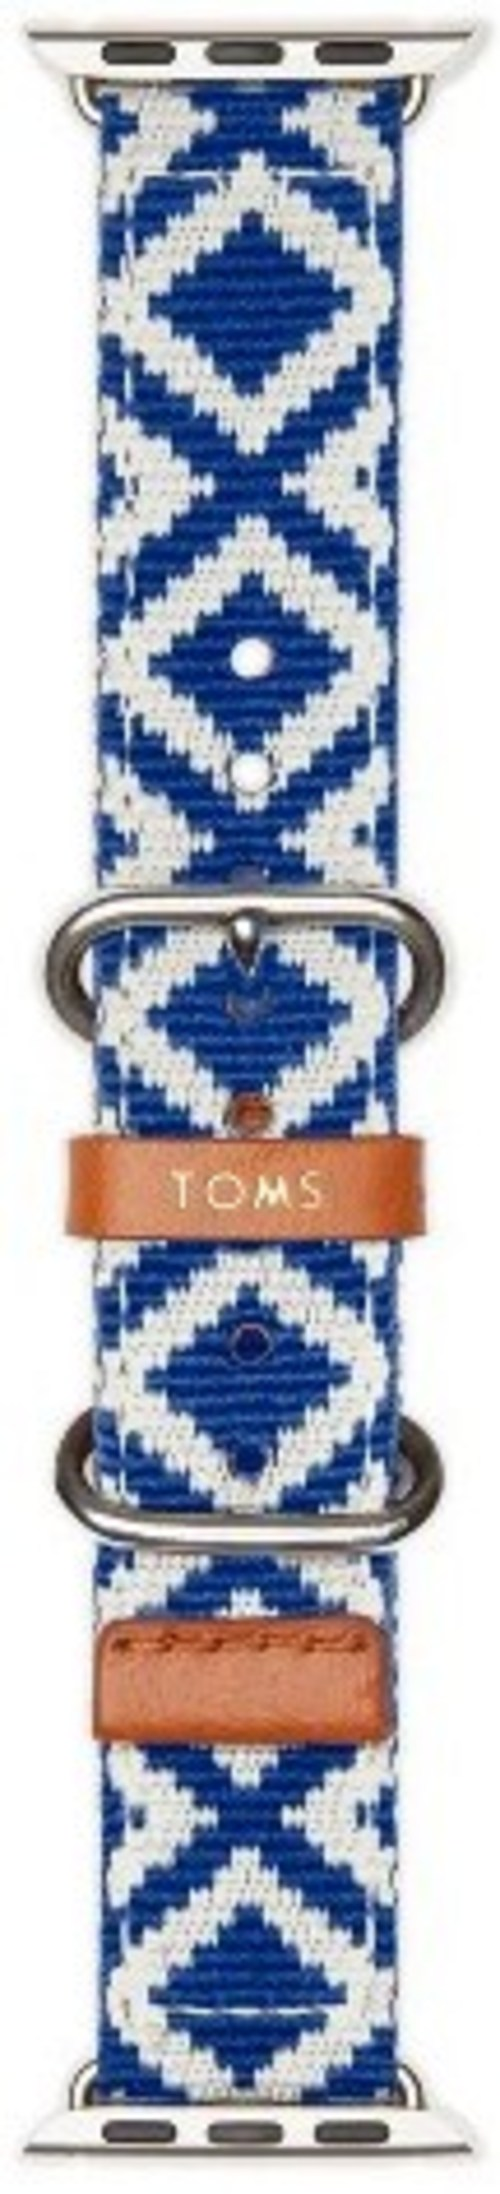 Toms 490570052965 1.5-inch Woven Band For Apple Watch - Blue